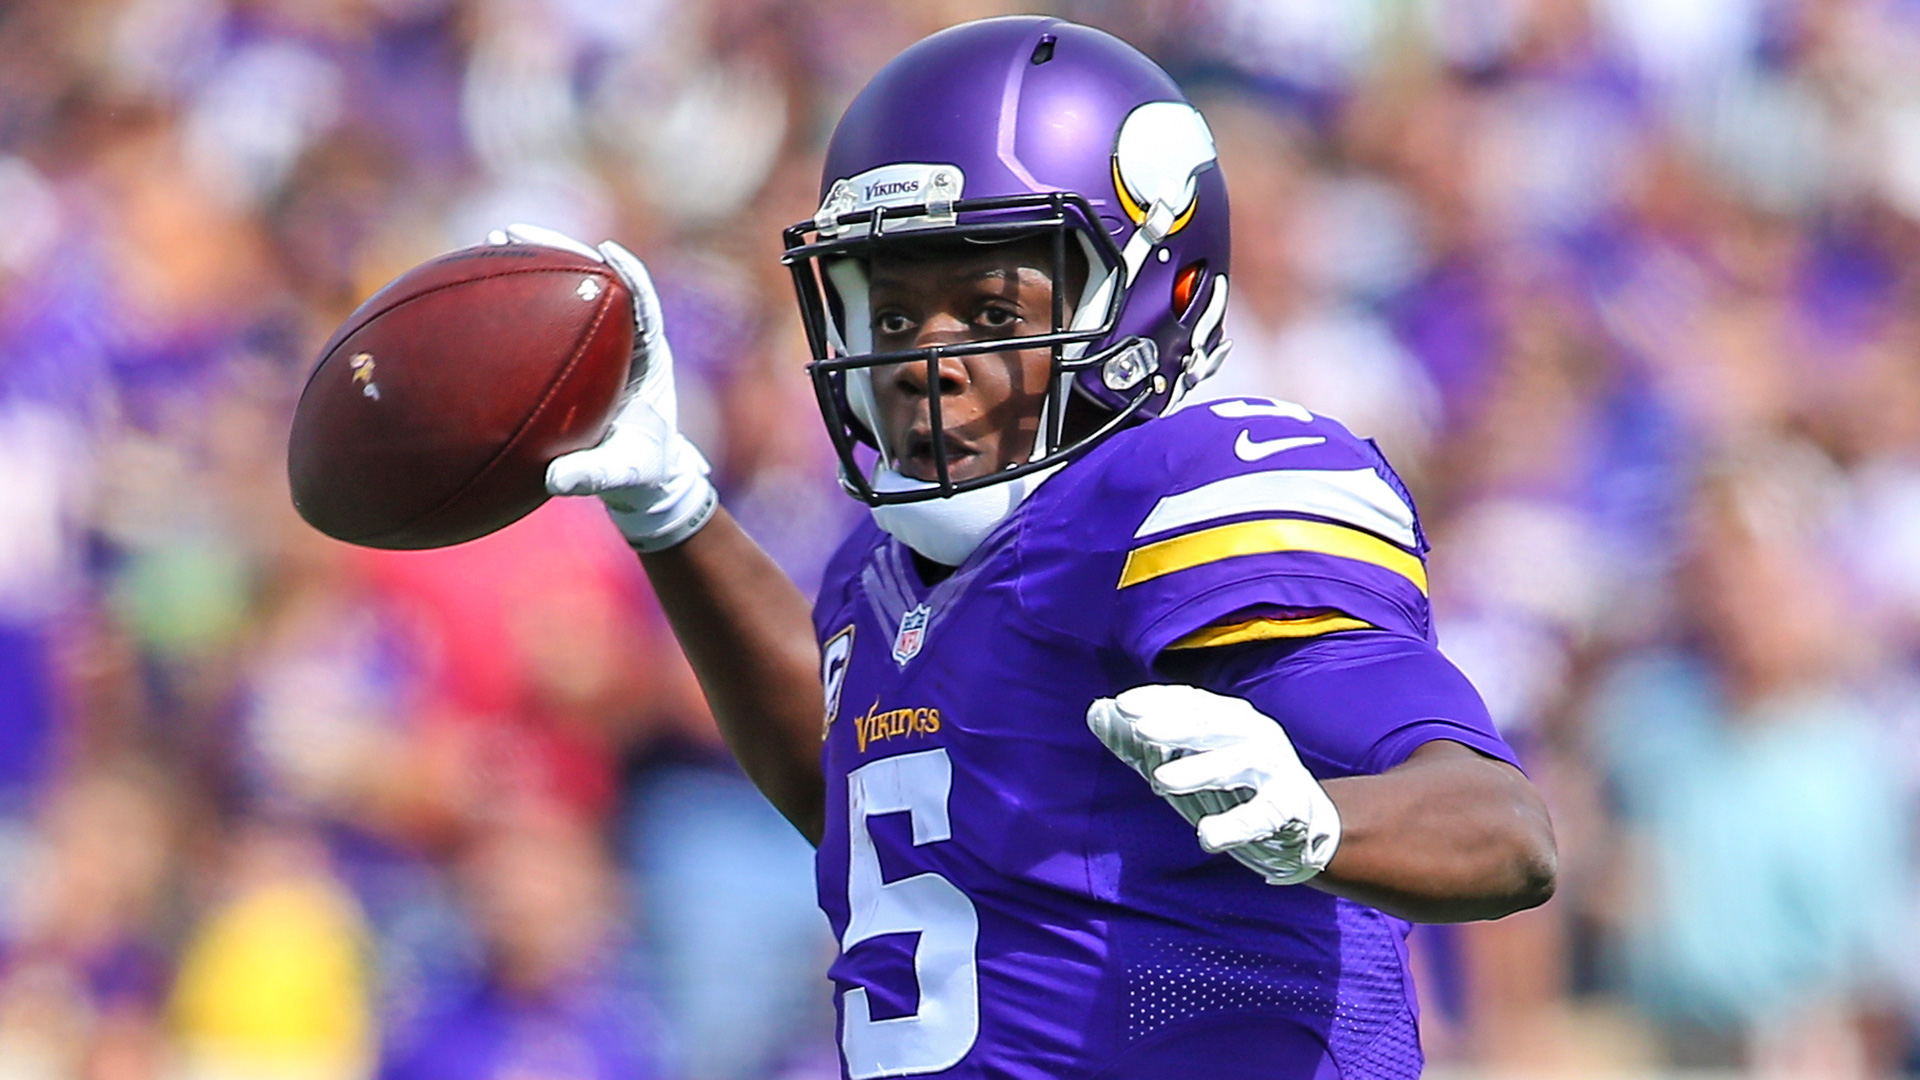 Zimmer: I don't want Teddy Bridgewater to leave team